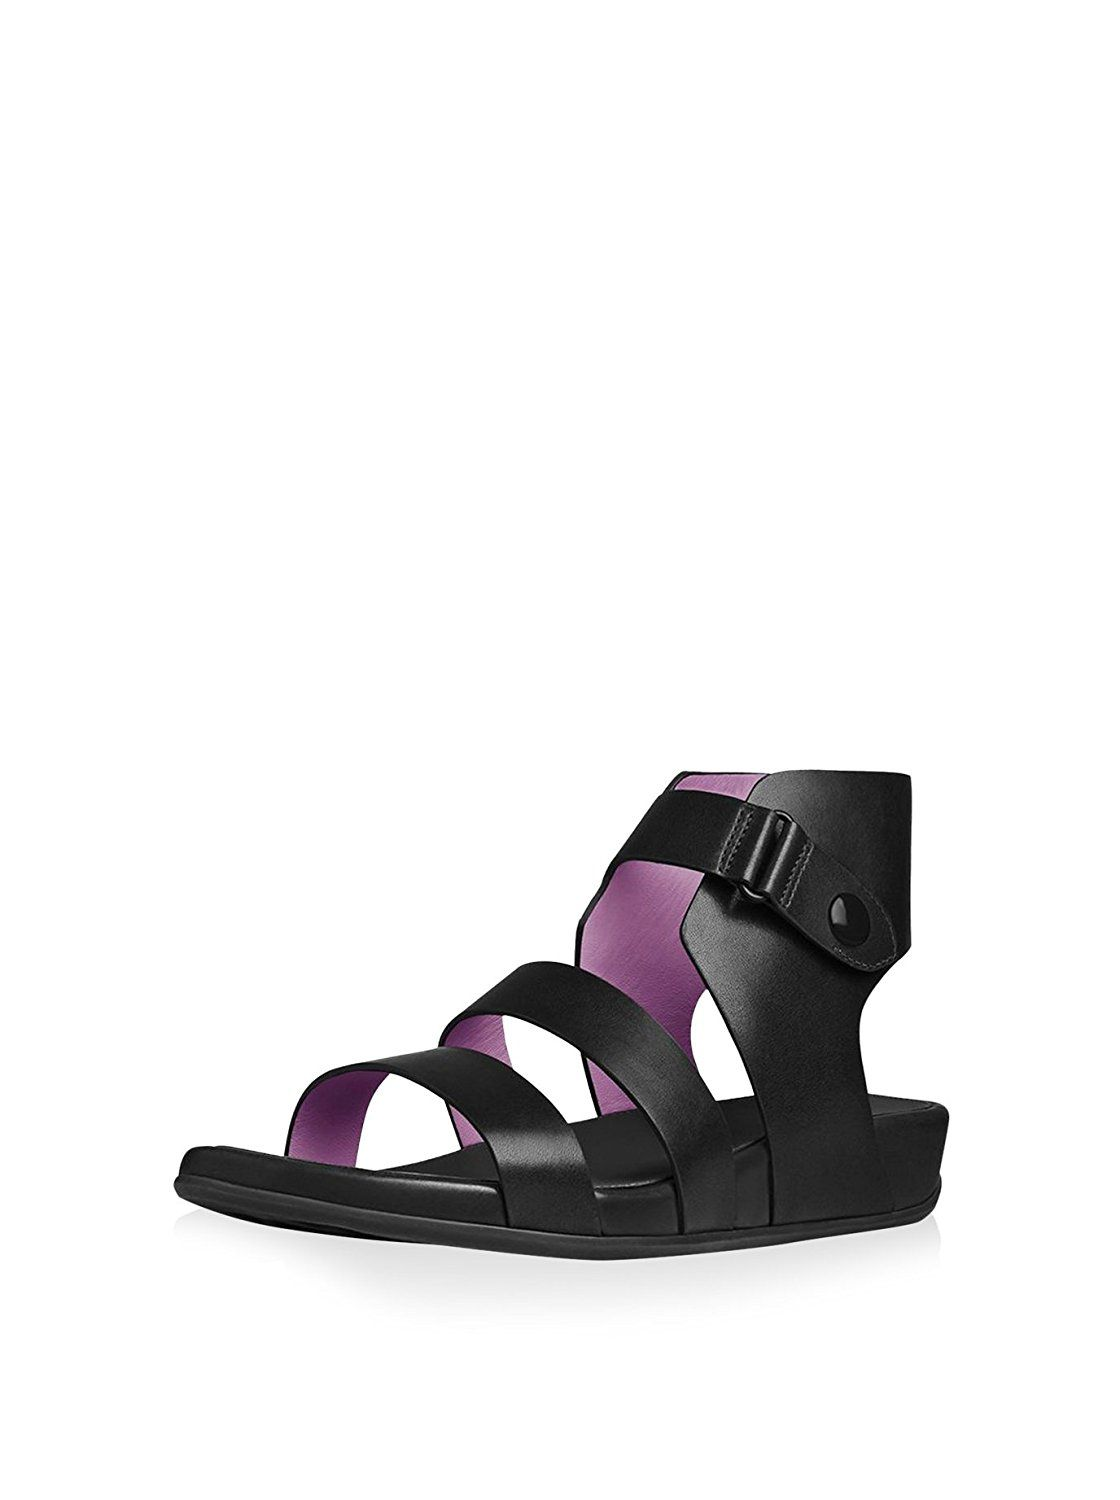 c44e90125853 FitFlop™ Gladdie™ Sandal    Review more details here   Gladiator sandals